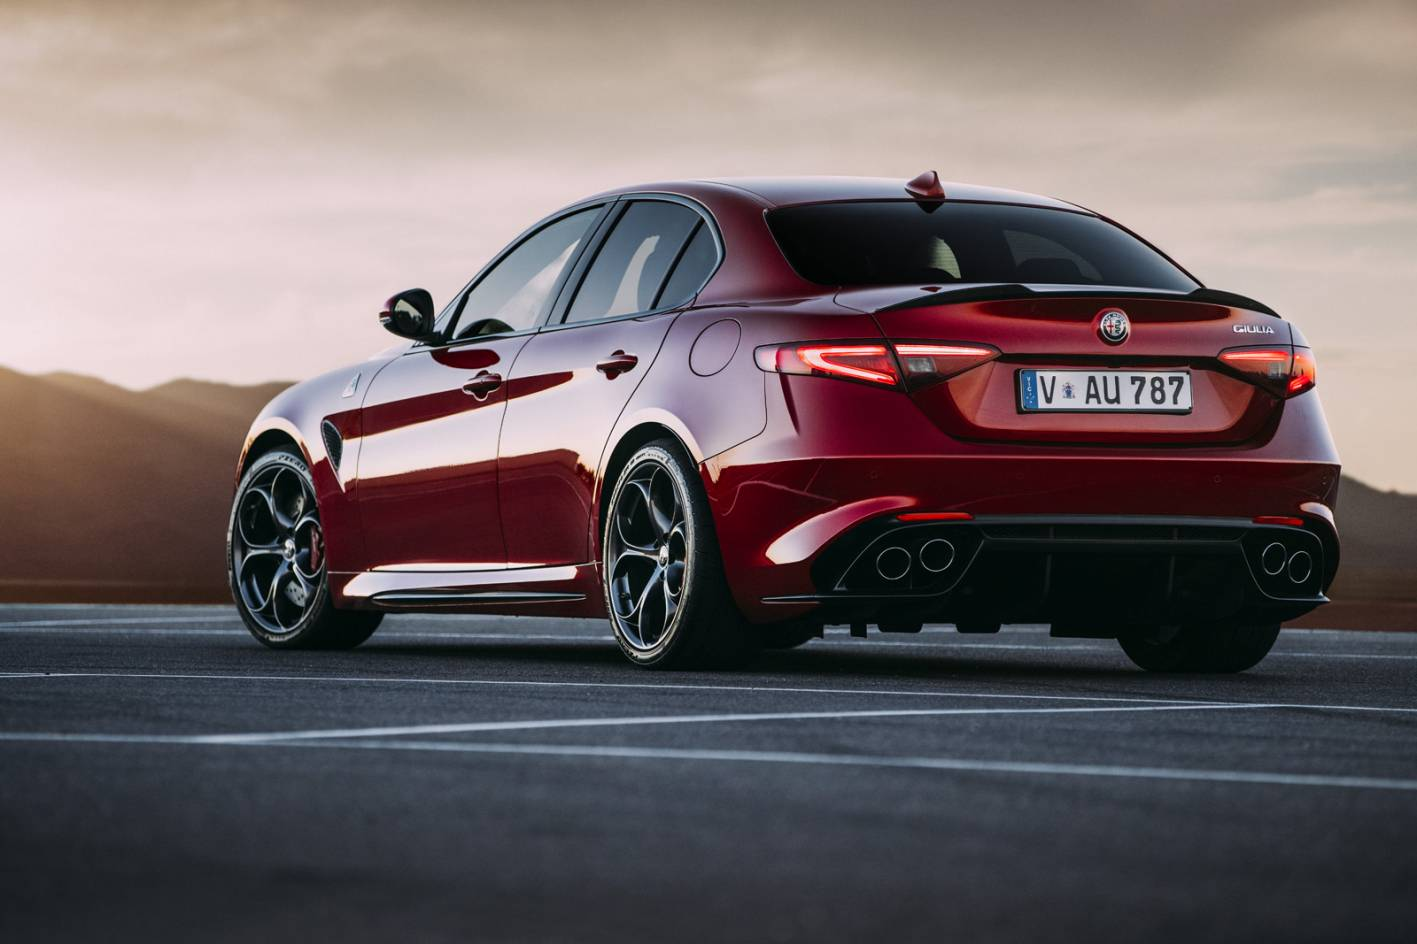 alfa romeo giulia now on sale in australia from 59 895 performancedrive. Black Bedroom Furniture Sets. Home Design Ideas